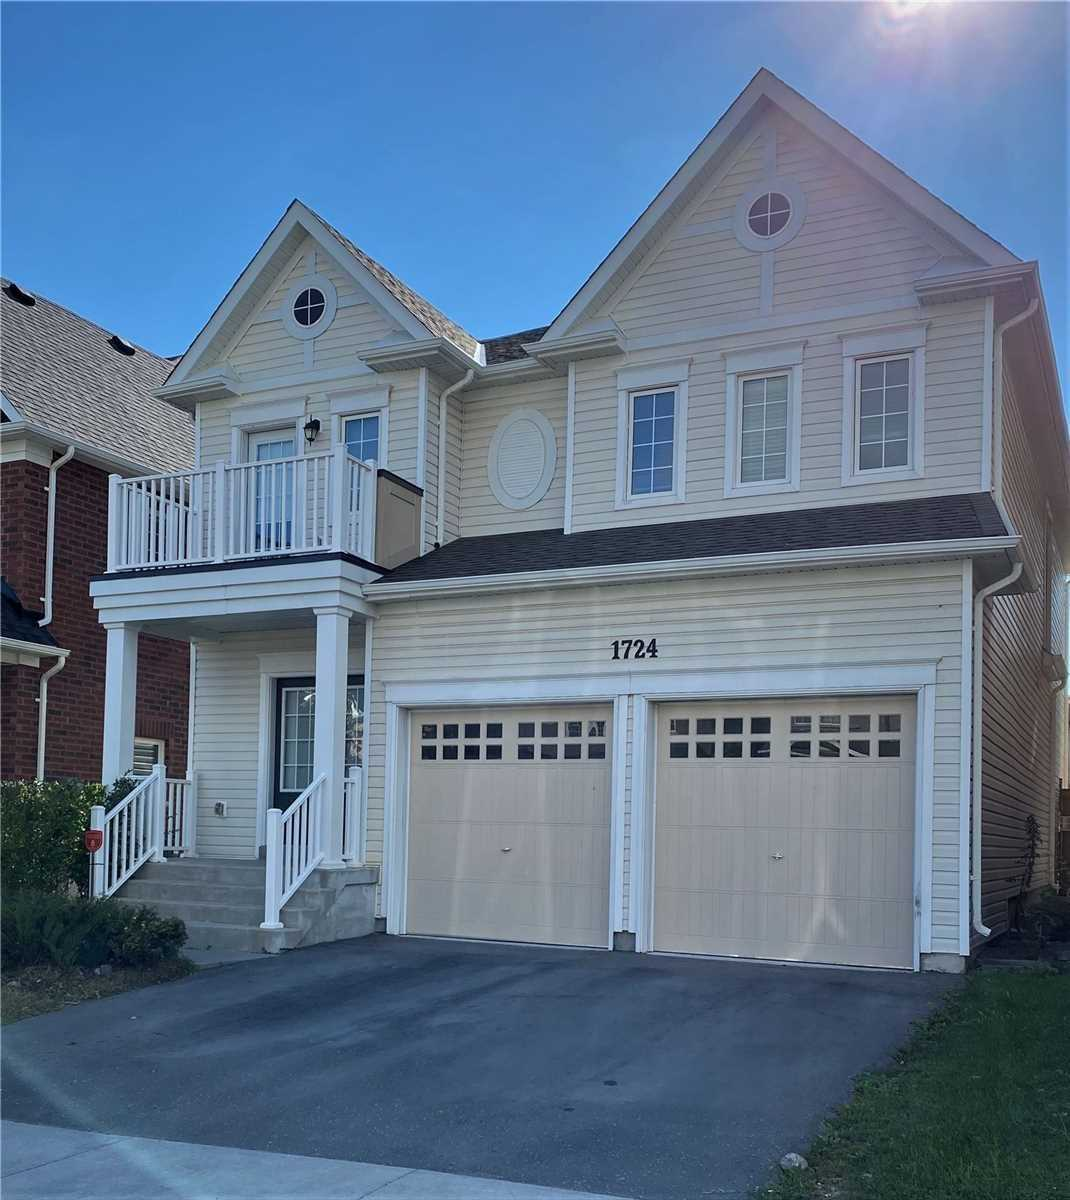 Detached house For Lease In Oshawa - 1724 Douglas Langtree Dr, Oshawa, Ontario, Canada L1K0X3 , 4 Bedrooms Bedrooms, ,4 BathroomsBathrooms,Detached,For Lease,Douglas Langtree